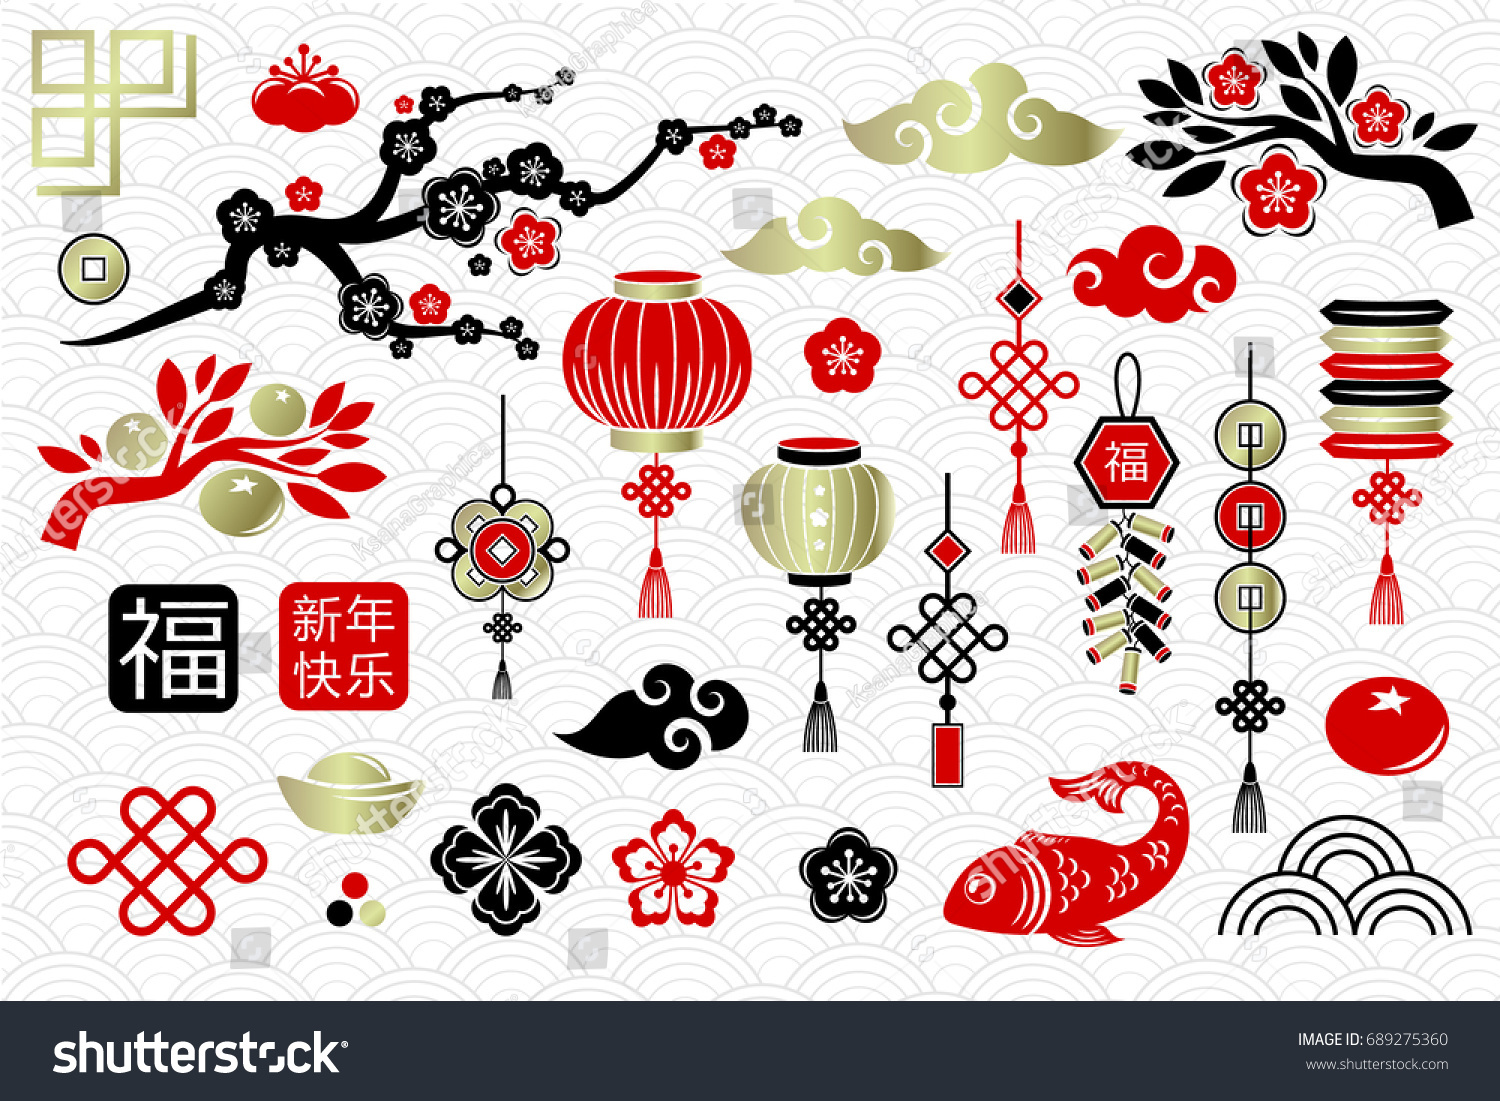 Chinese New Year Decoration Elements Cherry Stock Vector Royalty